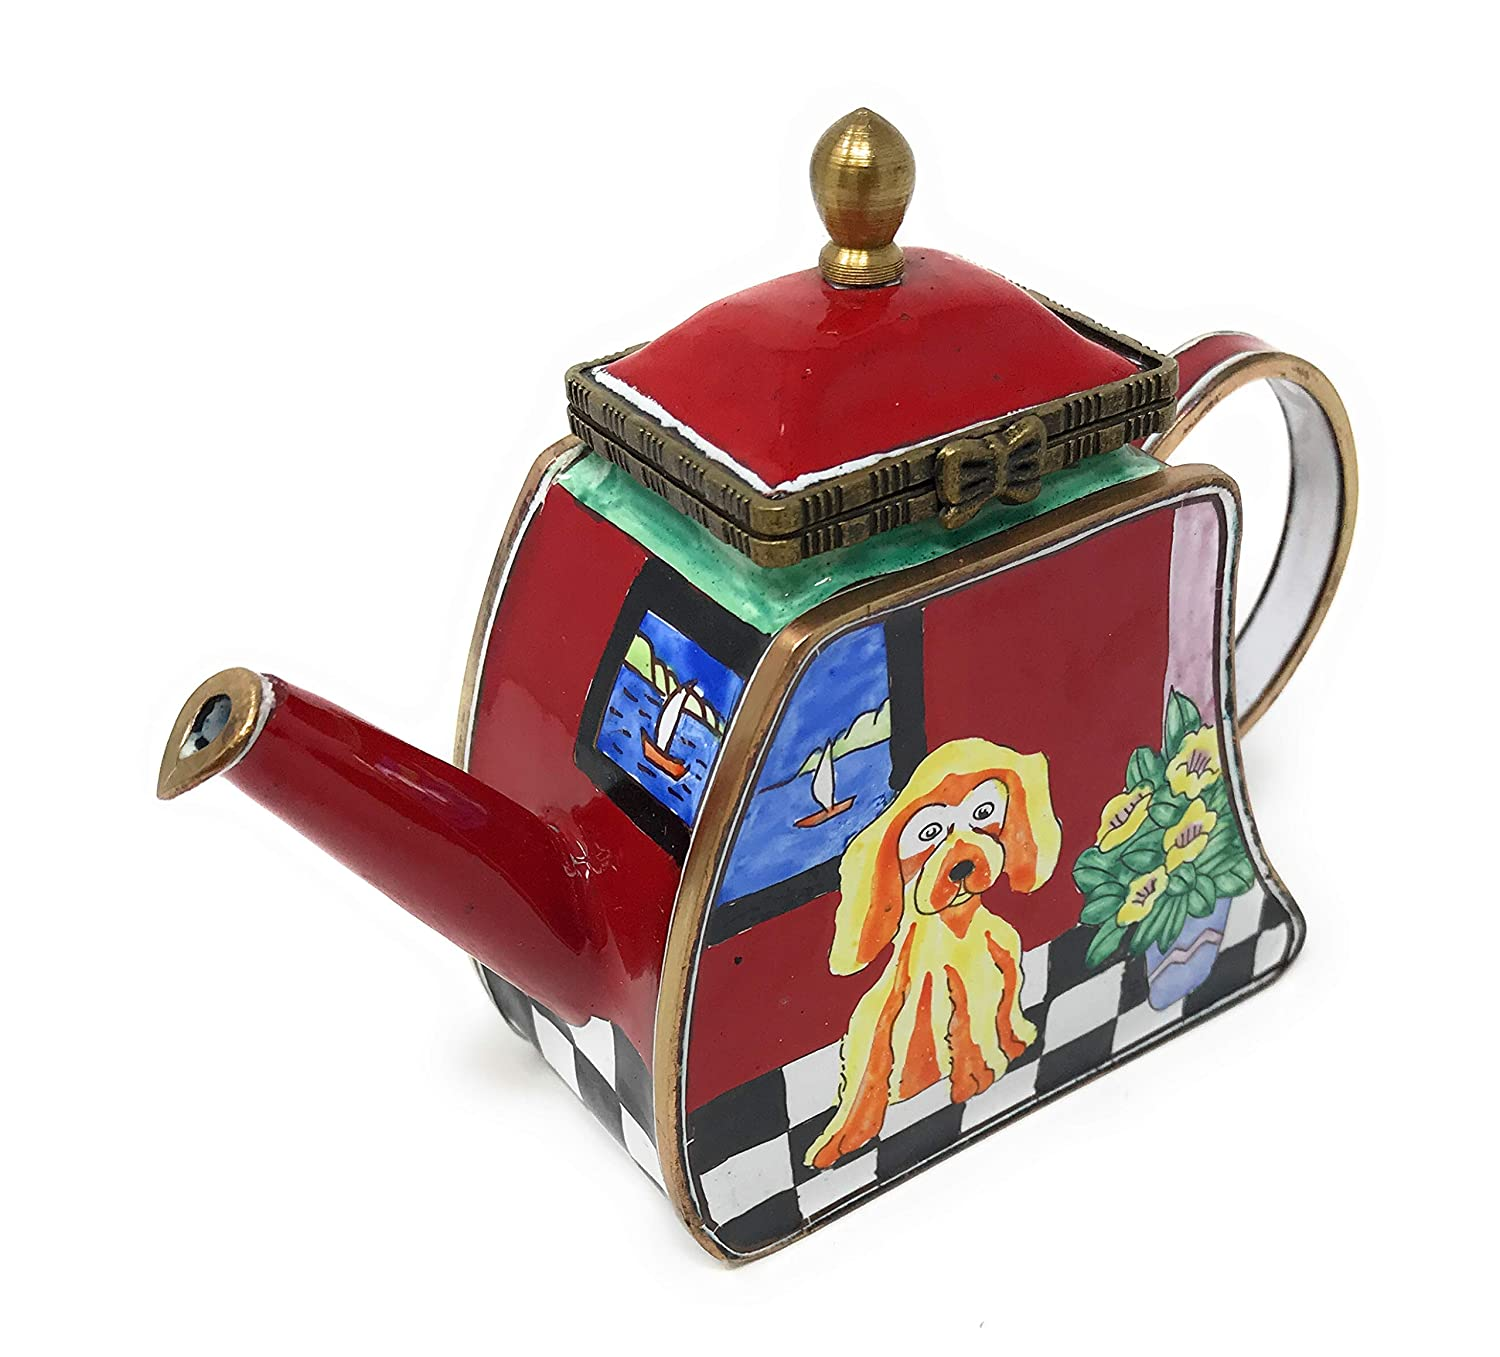 4.25 Inches Long Kelvin Chen Puppy Dog Enameled Miniature Teapot with Hinged Lid